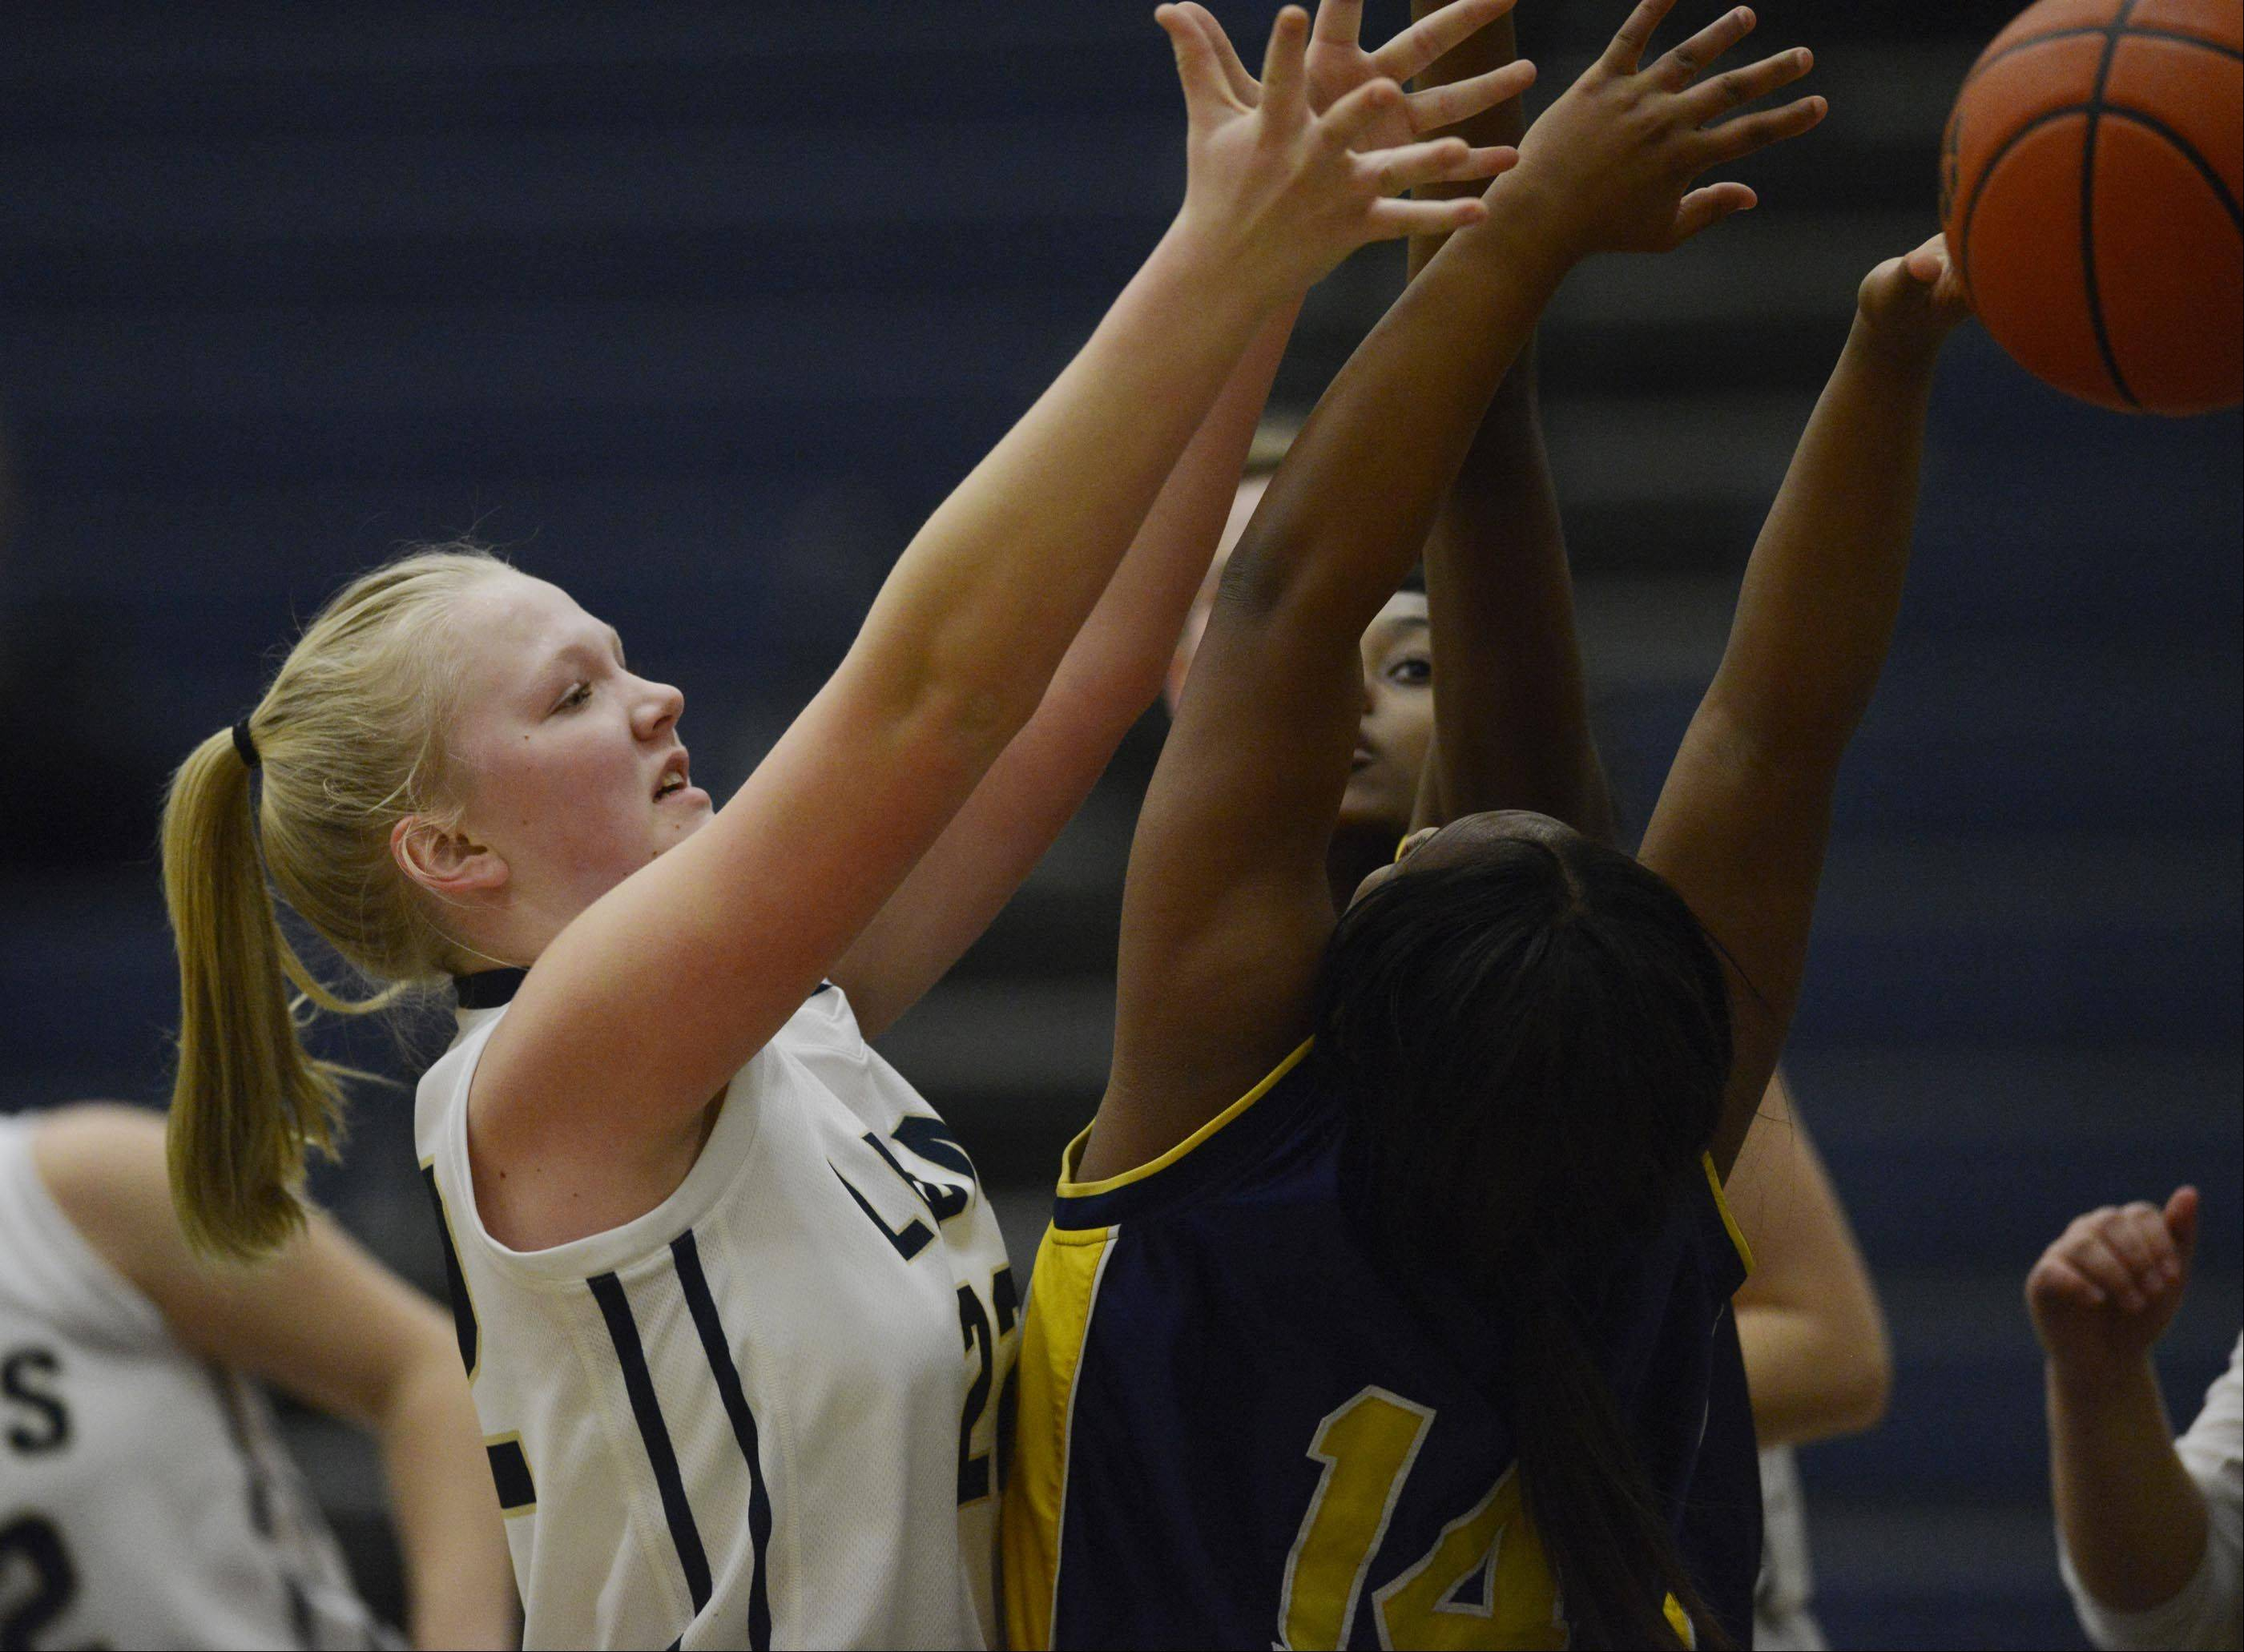 Harvest Christian Academy's Rachel Oostdyk reaches for a rebound against Cristo Rey St. Martin's Jessena Fields Monday in Elgin.